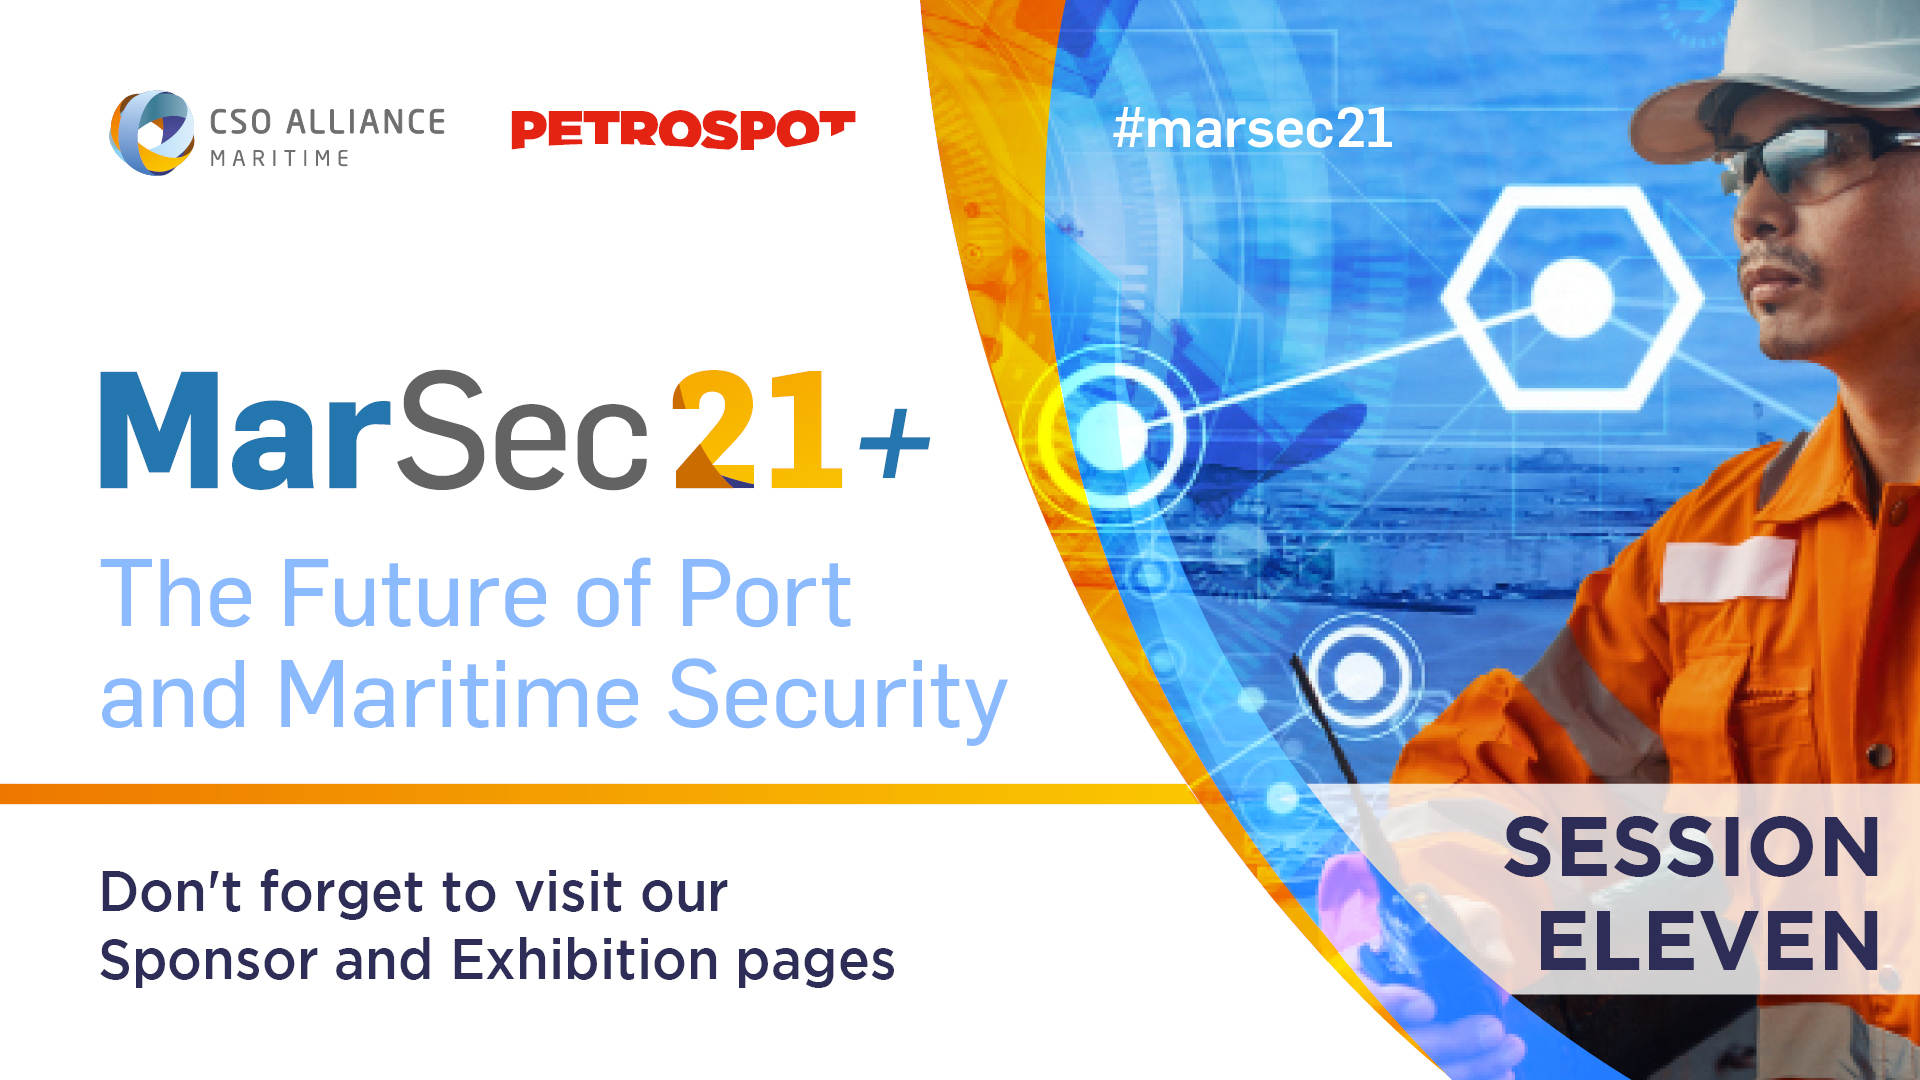 MarSec 21+ Session 11: How do you find and invest in effective training to meet IMO Regulation?